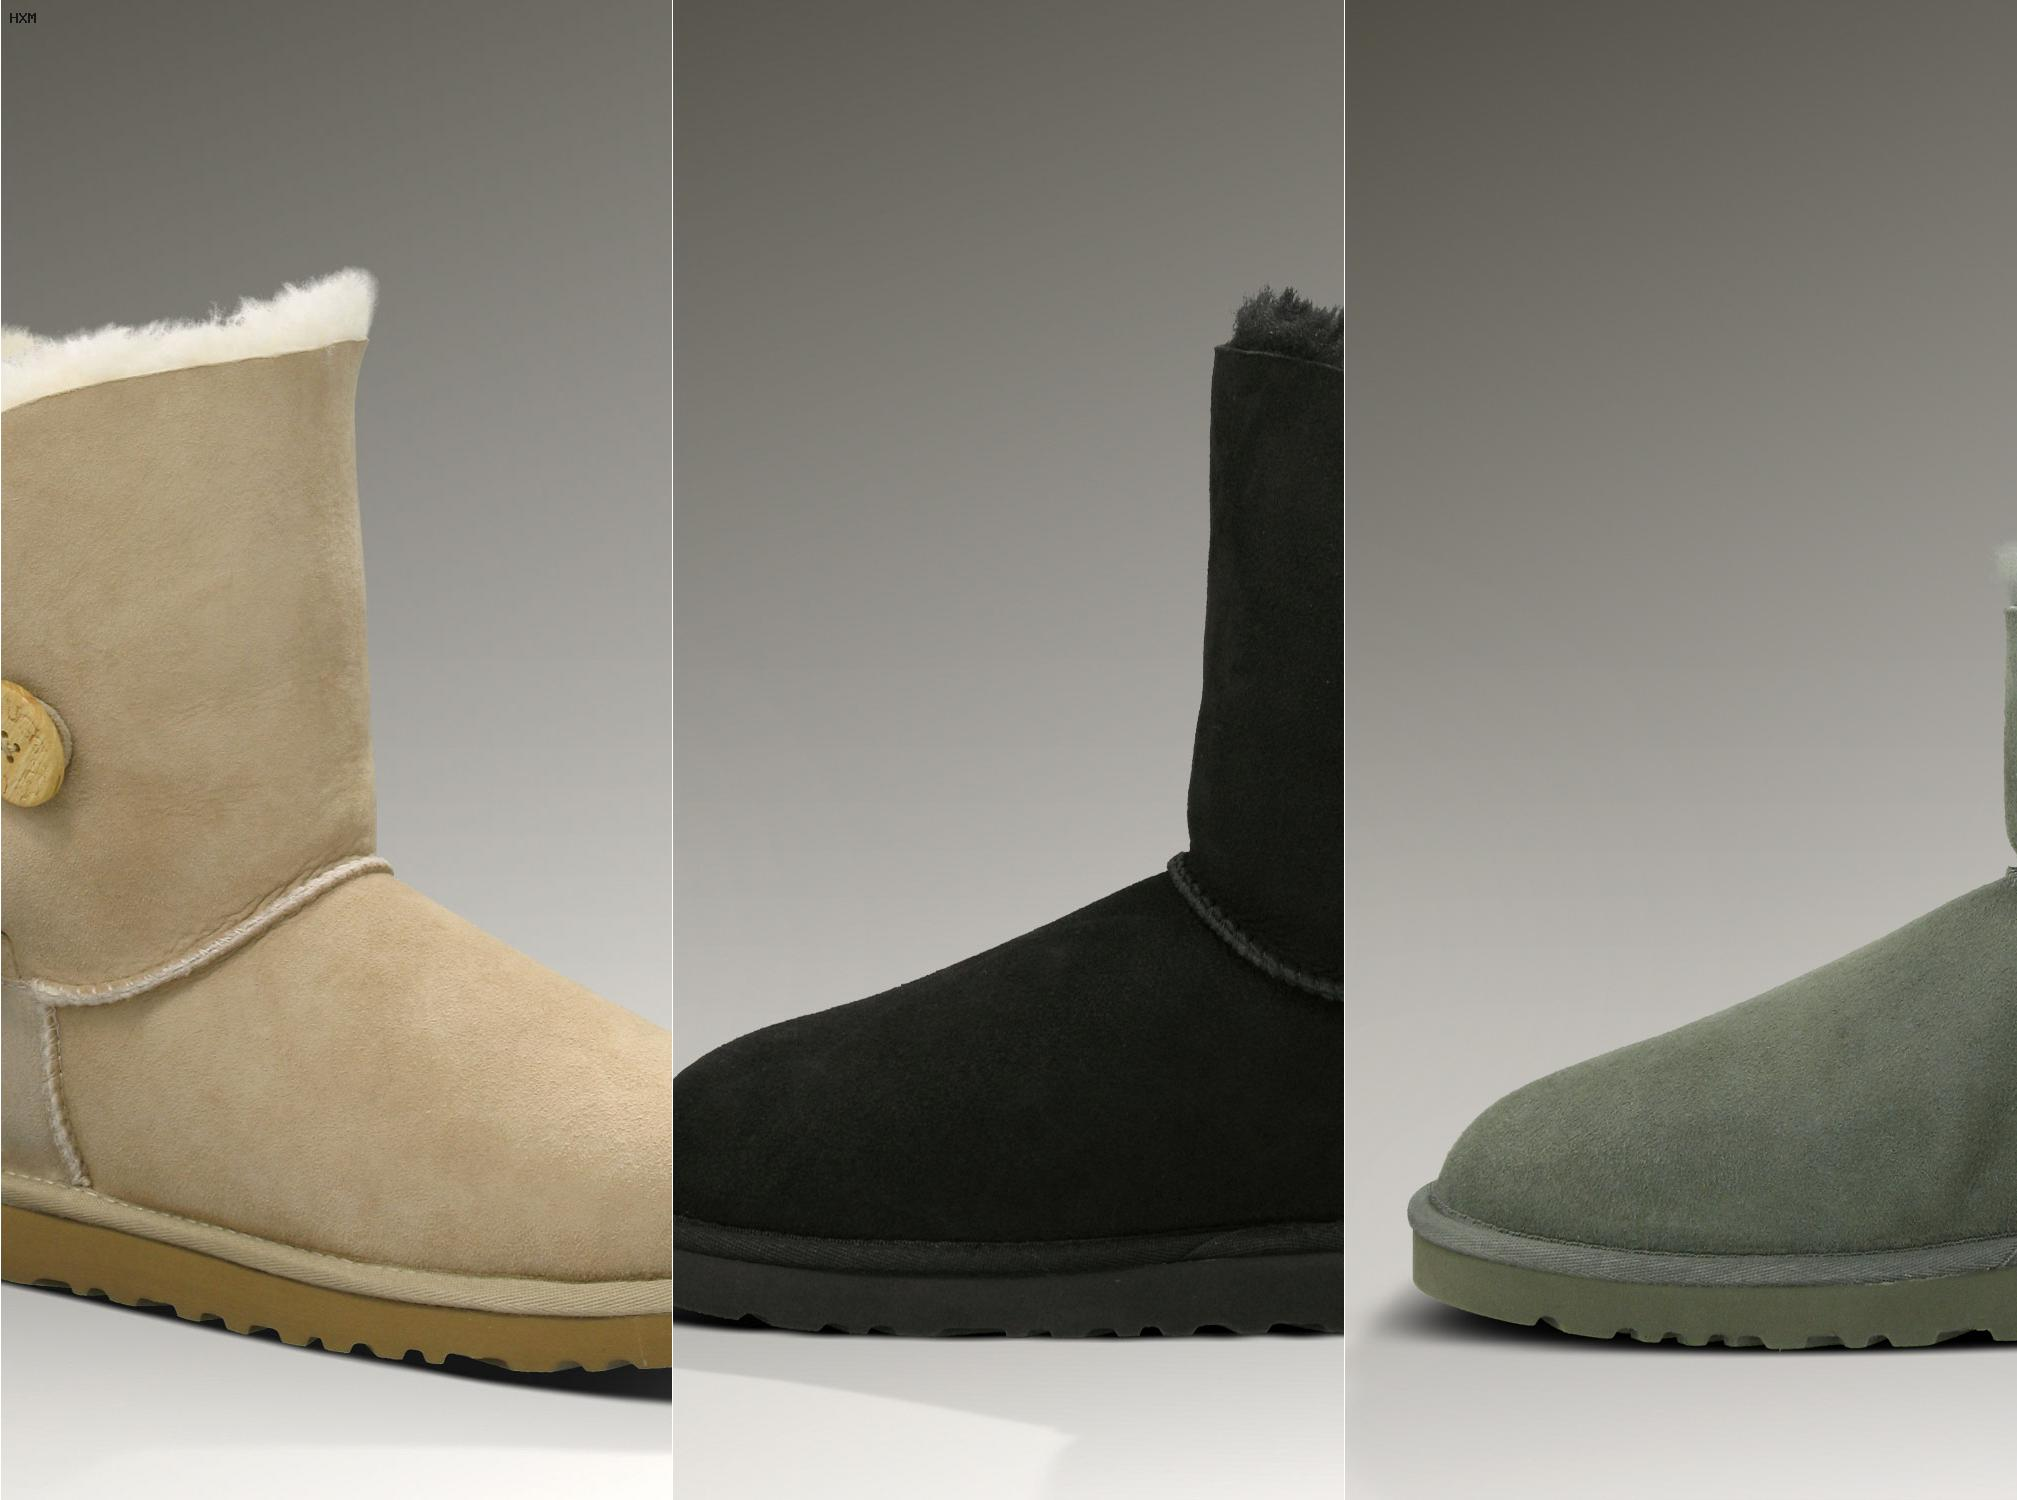 ugg boots amsterdam airport